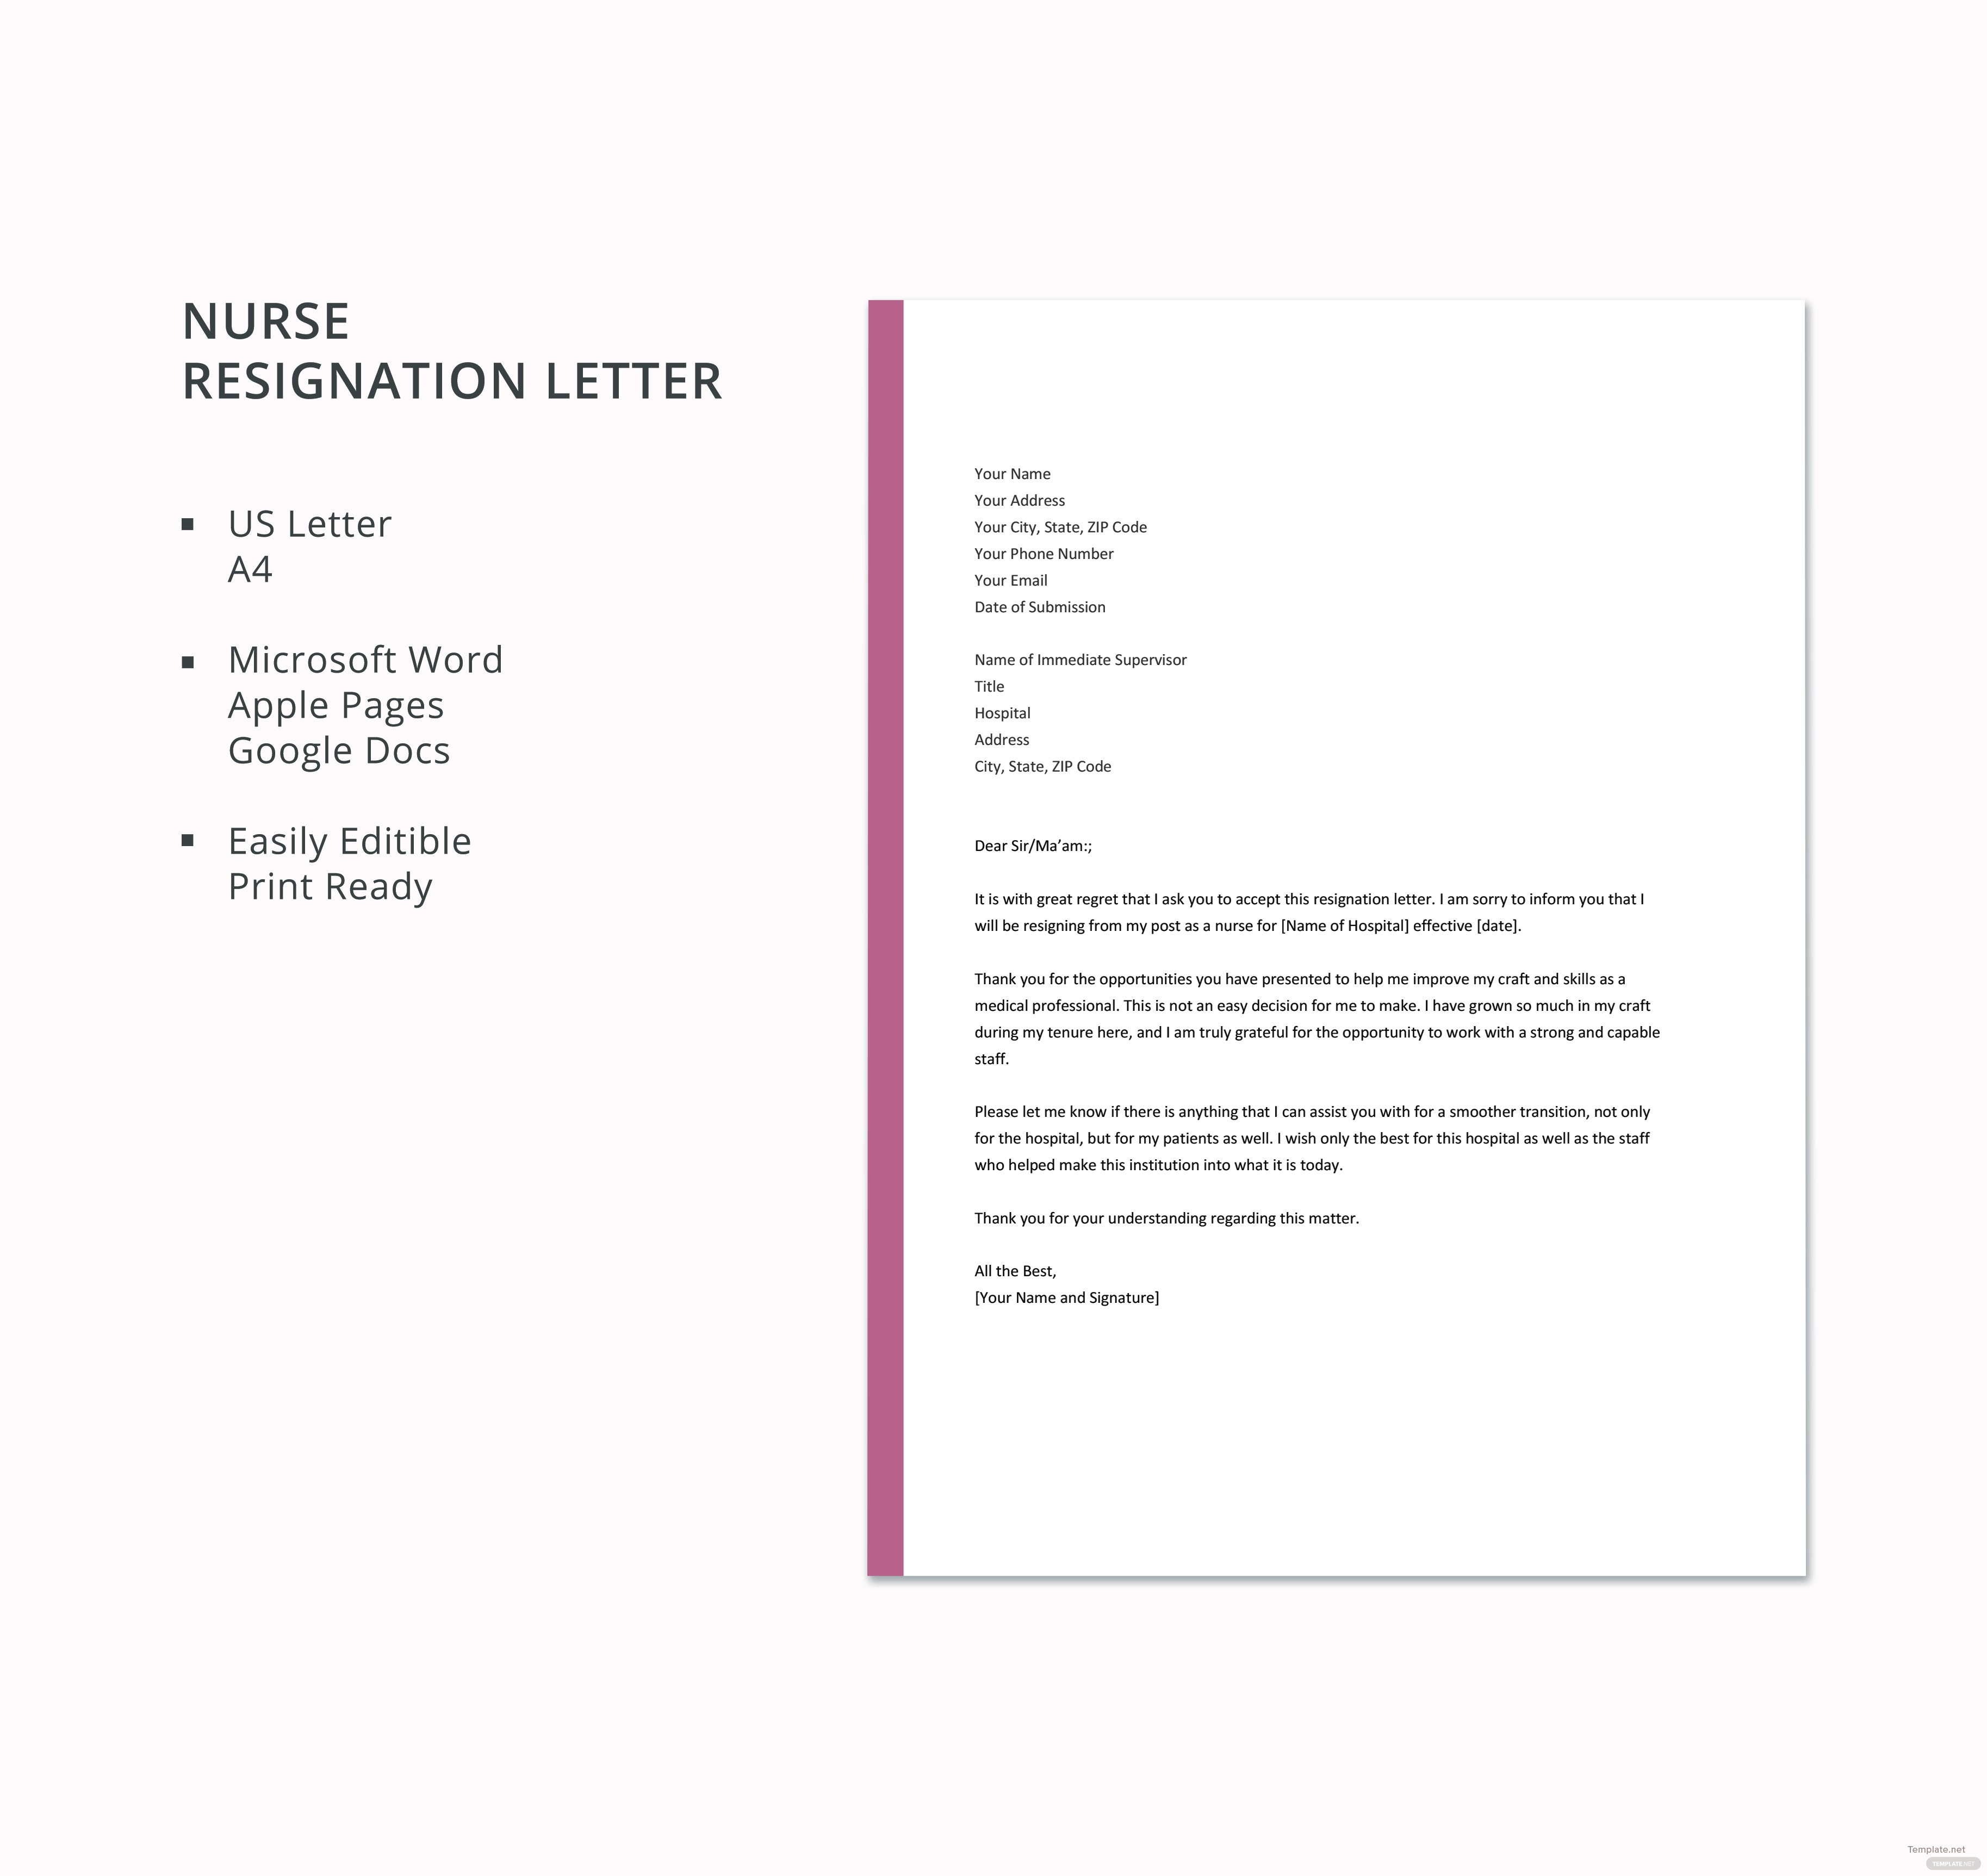 Nurse Resignation Letter Template in Microsoft Word, Apple Pages ...